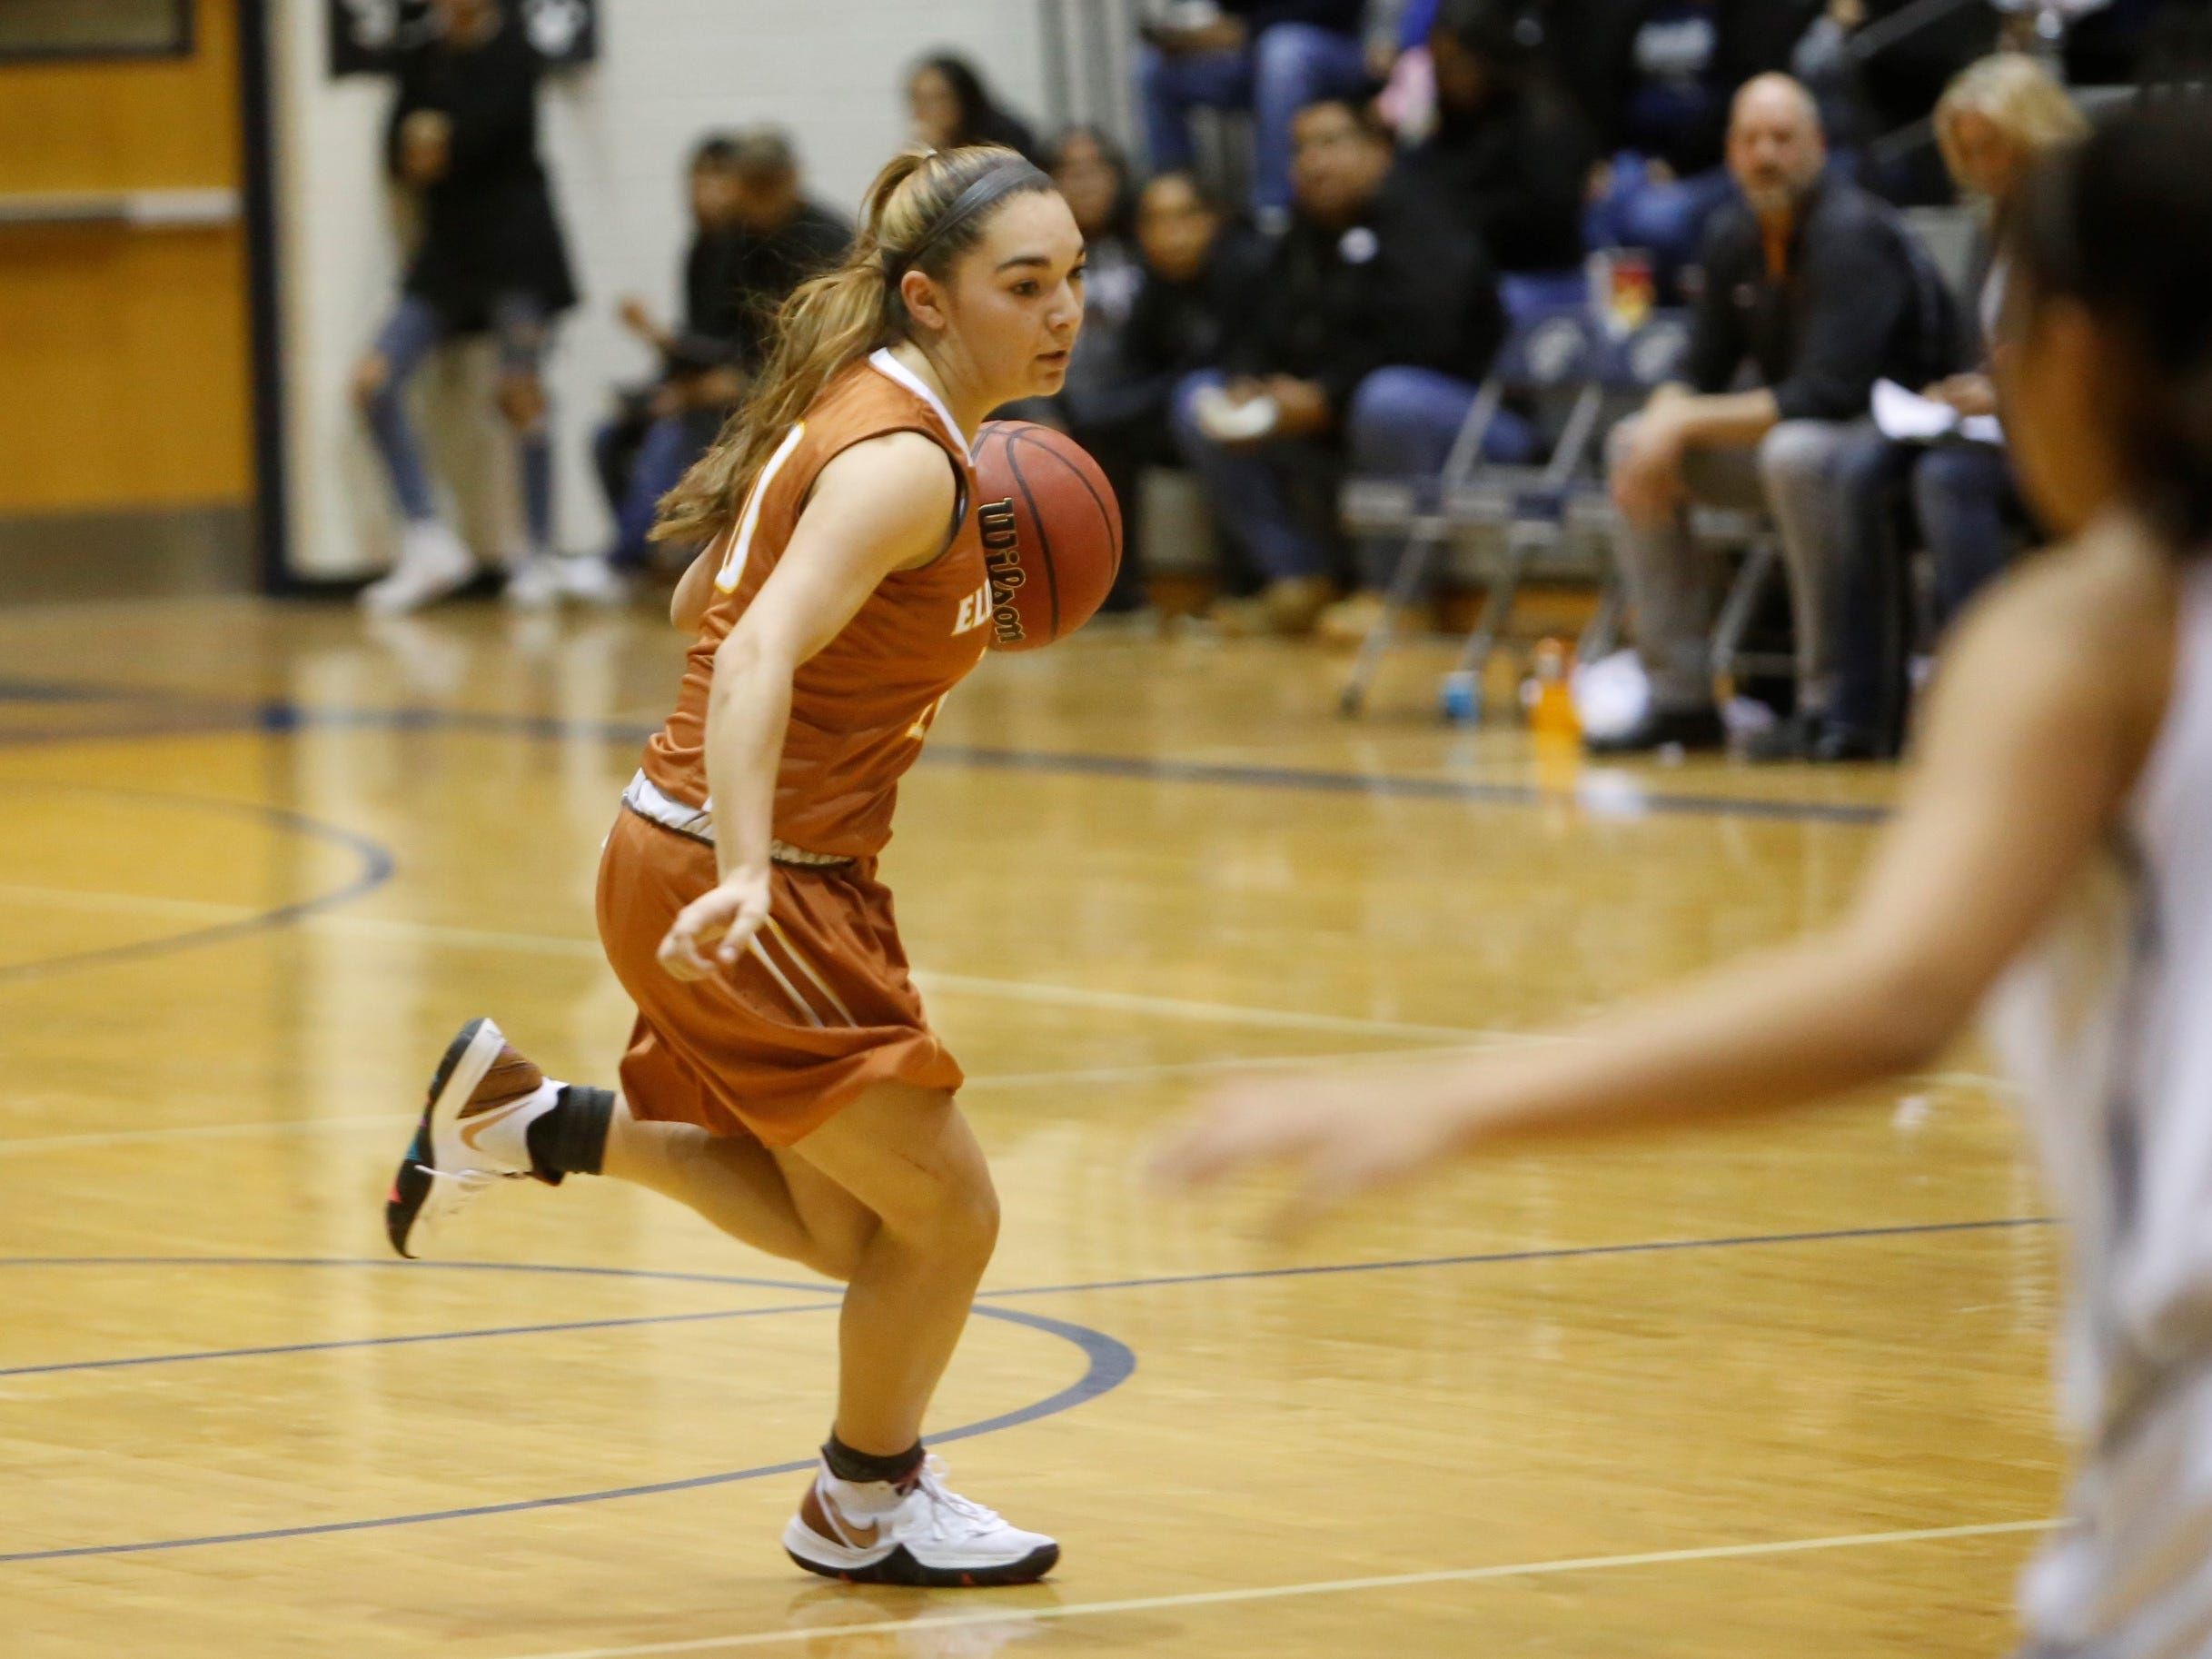 Eldorado's Laney Lucero dribbles toward the middle lane against Piedra Vista during Friday's 5A playoff opener at Jerry A. Conner Fieldhouse in Farmington.